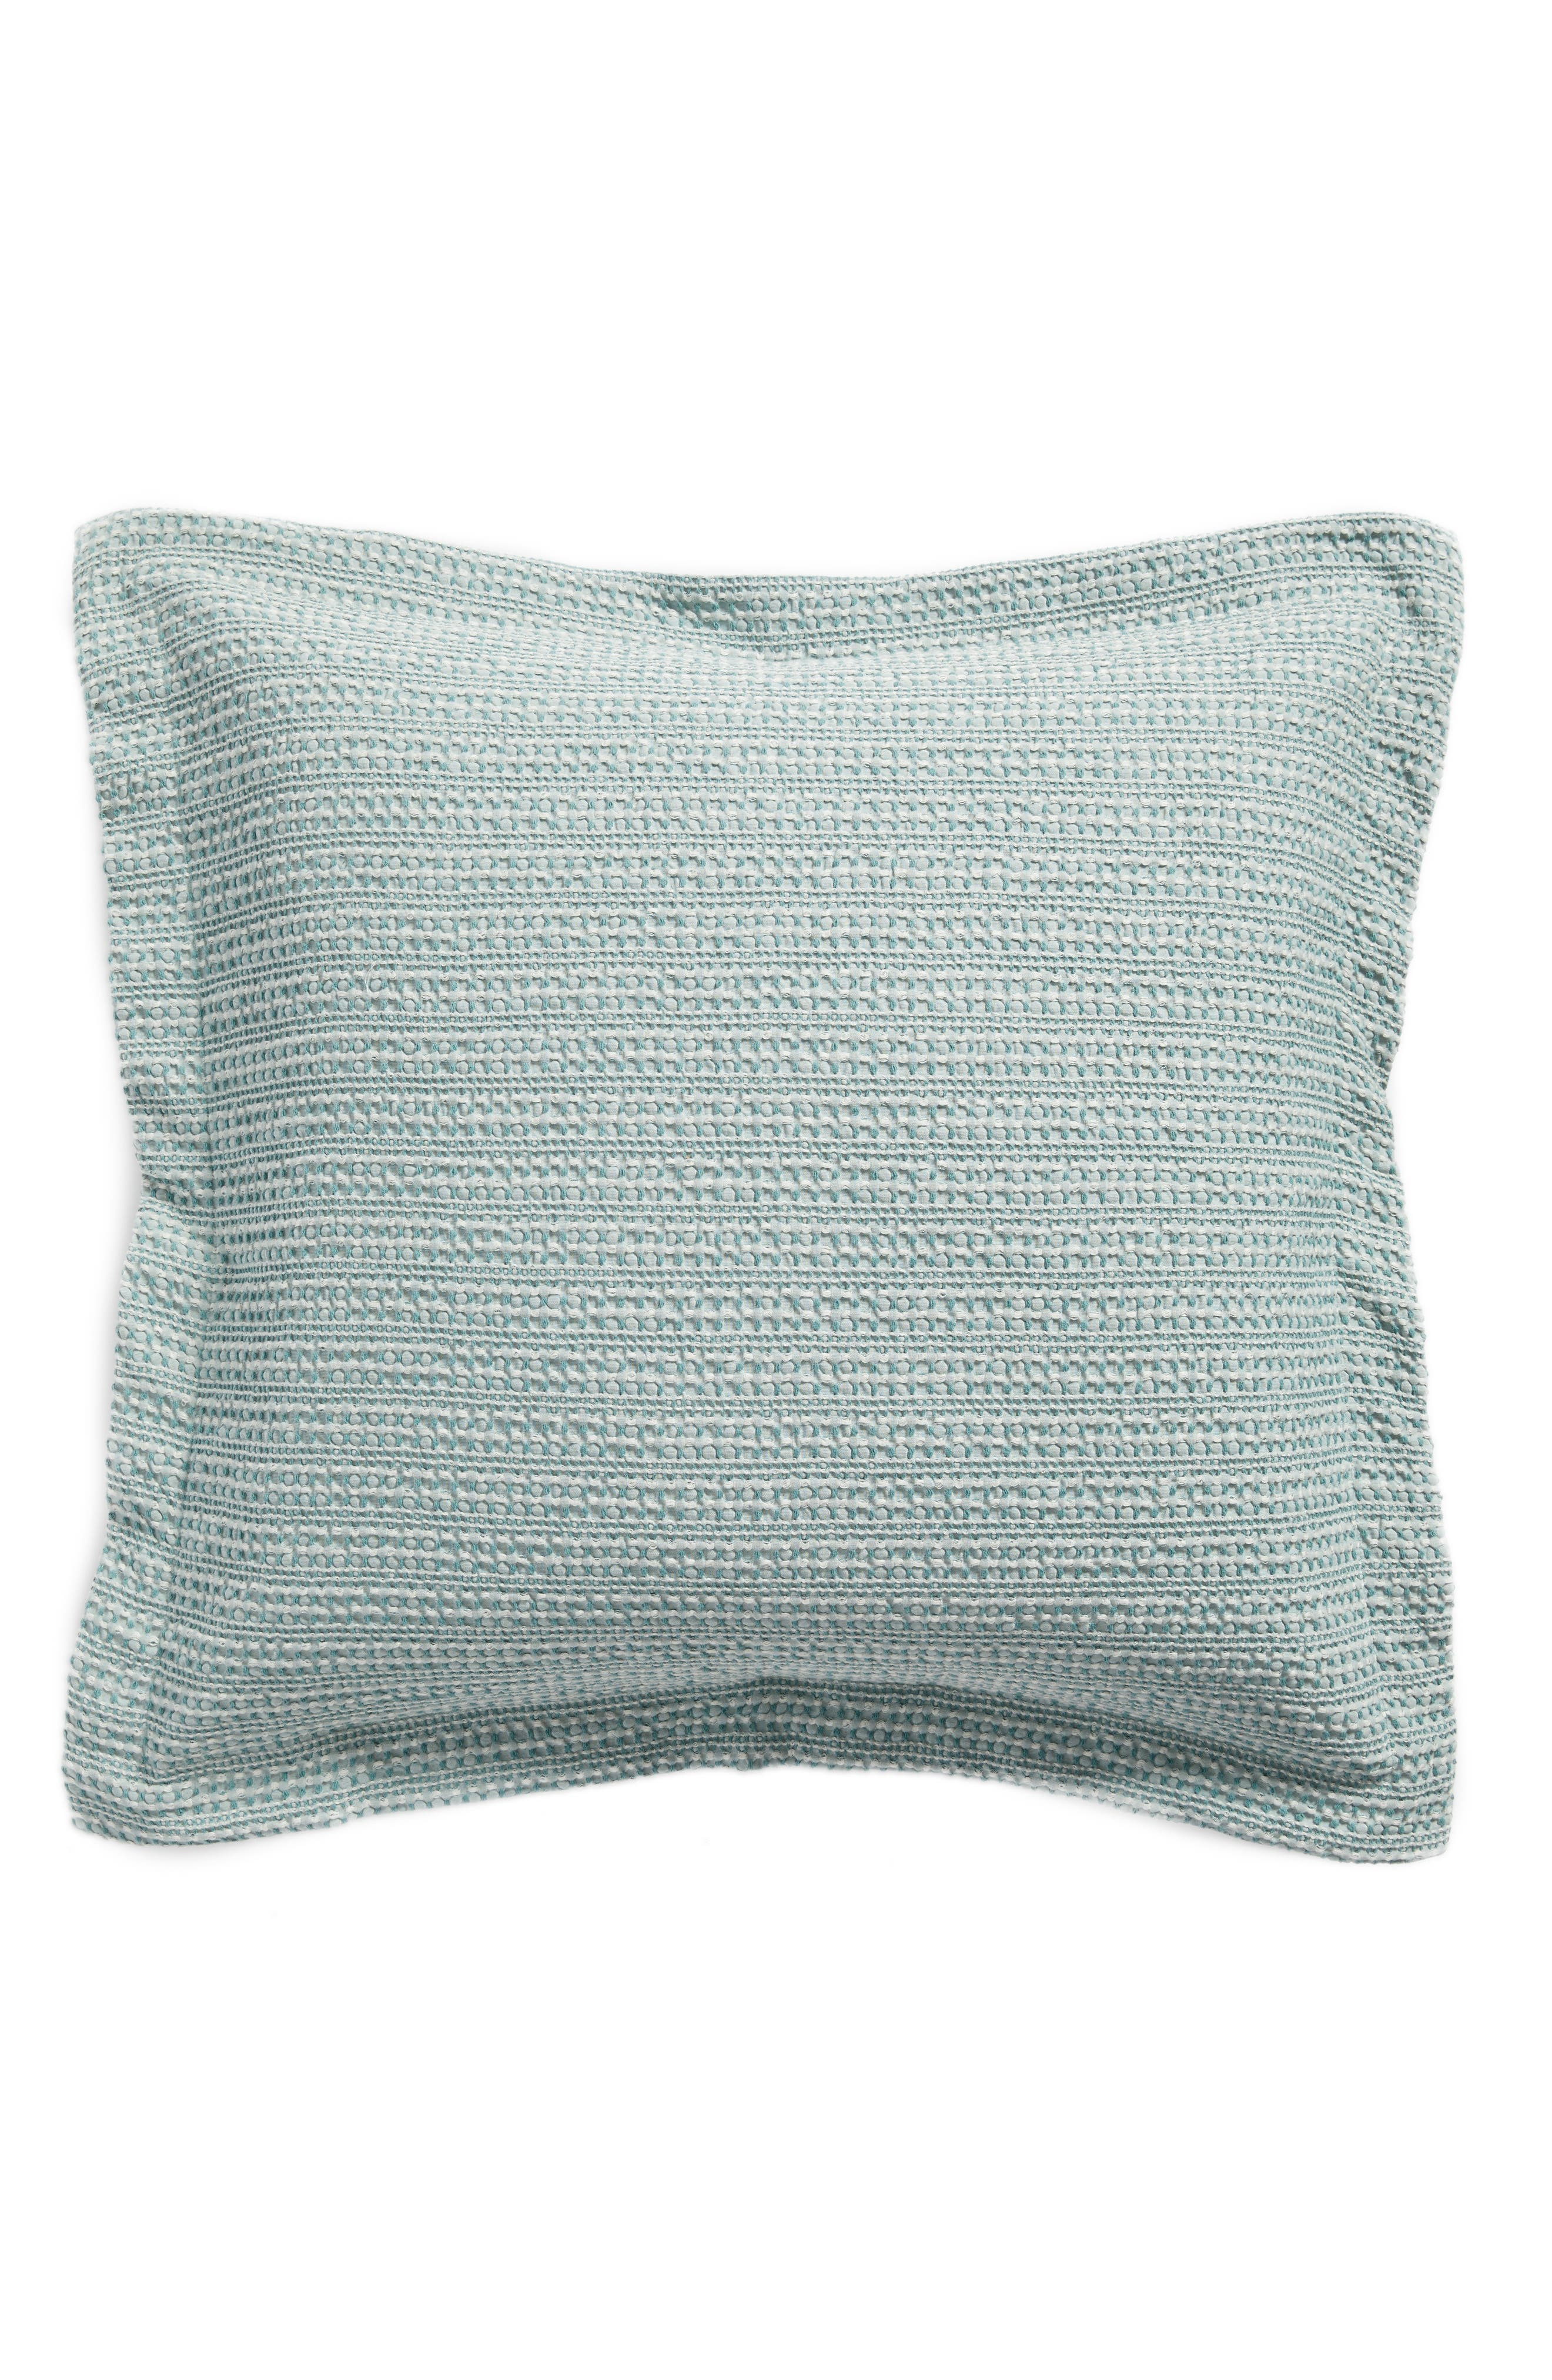 Stitched Accent Pillow,                         Main,                         color, Spa